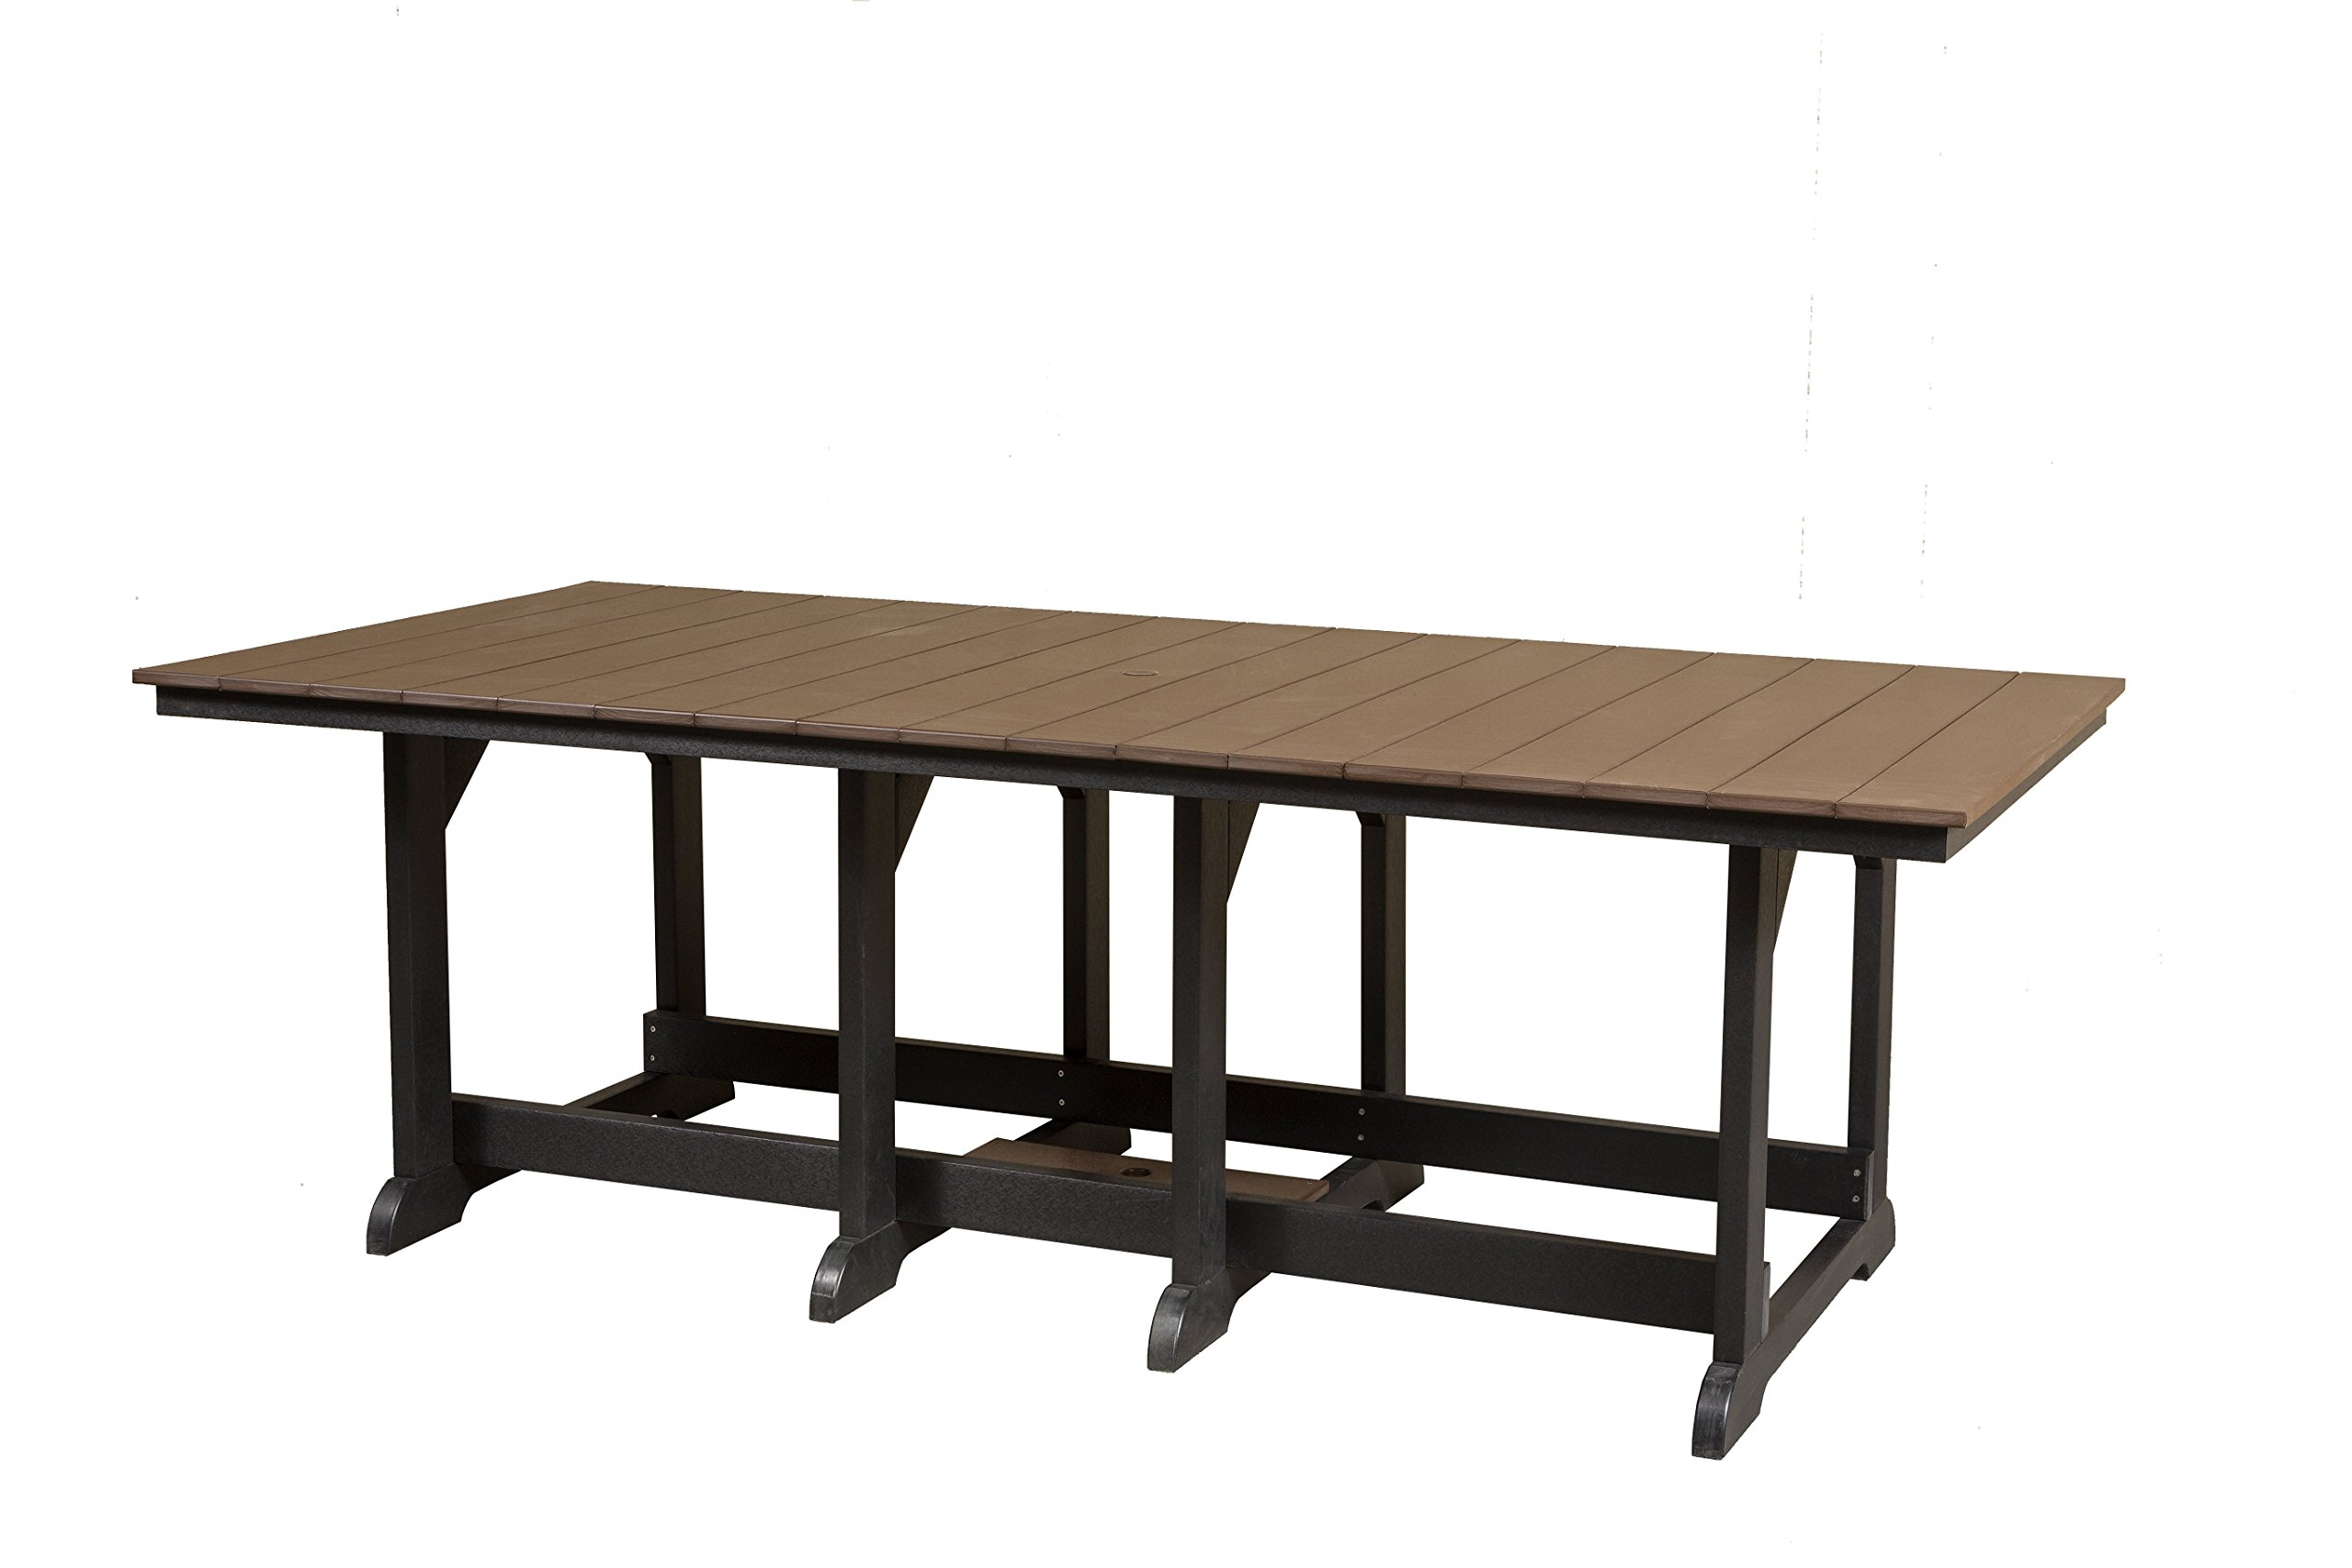 Little Cottage Company Heritage Table, 44'' x 94'', Light Gray by Little Cottage Company